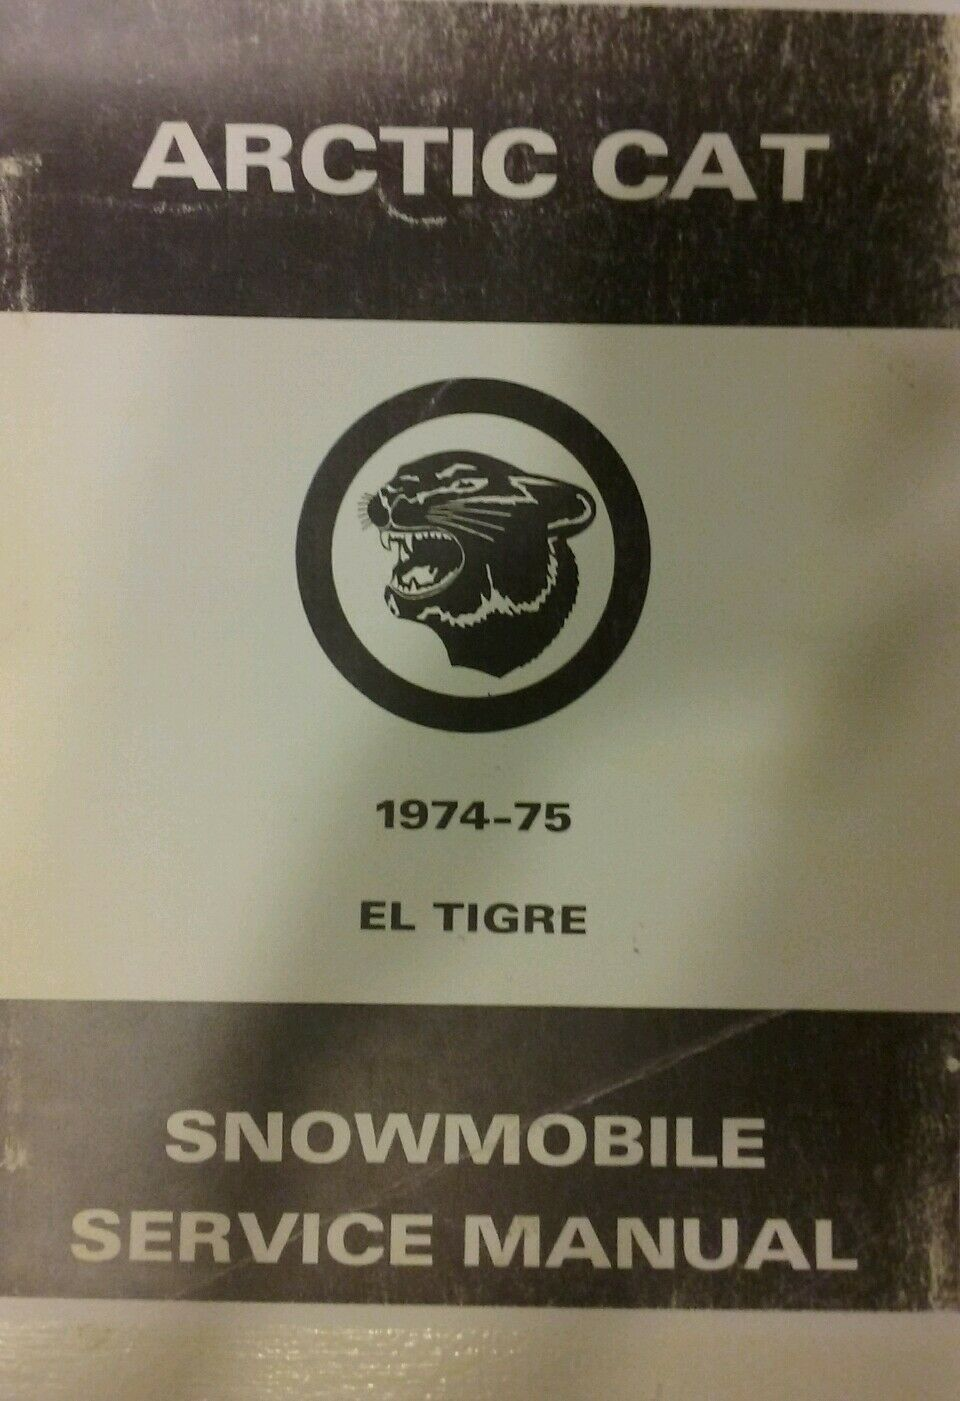 Arctic Cat El Tigre Snowmobile Service & Parts Manual 340 400 440 Sled 392pg BIG